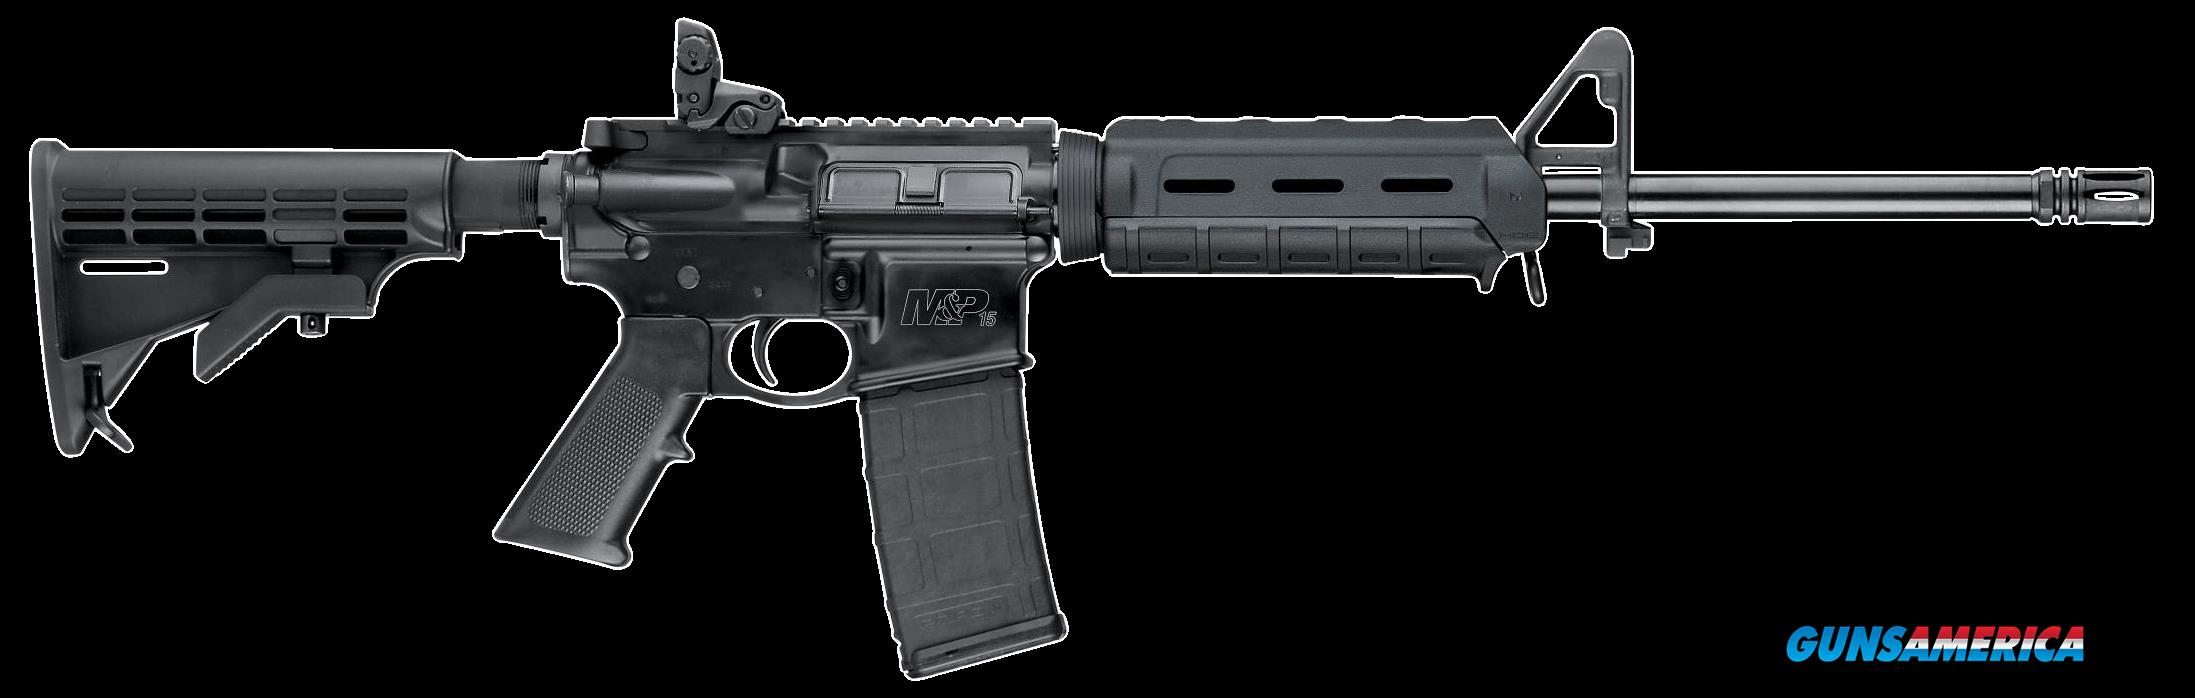 "Smith & Wesson 10305 M&P15 Sport II with M-Lok Semi-Automatic 223 Remington/5.56 NATO 16"" 30+1  Guns > Rifles > S Misc Rifles"